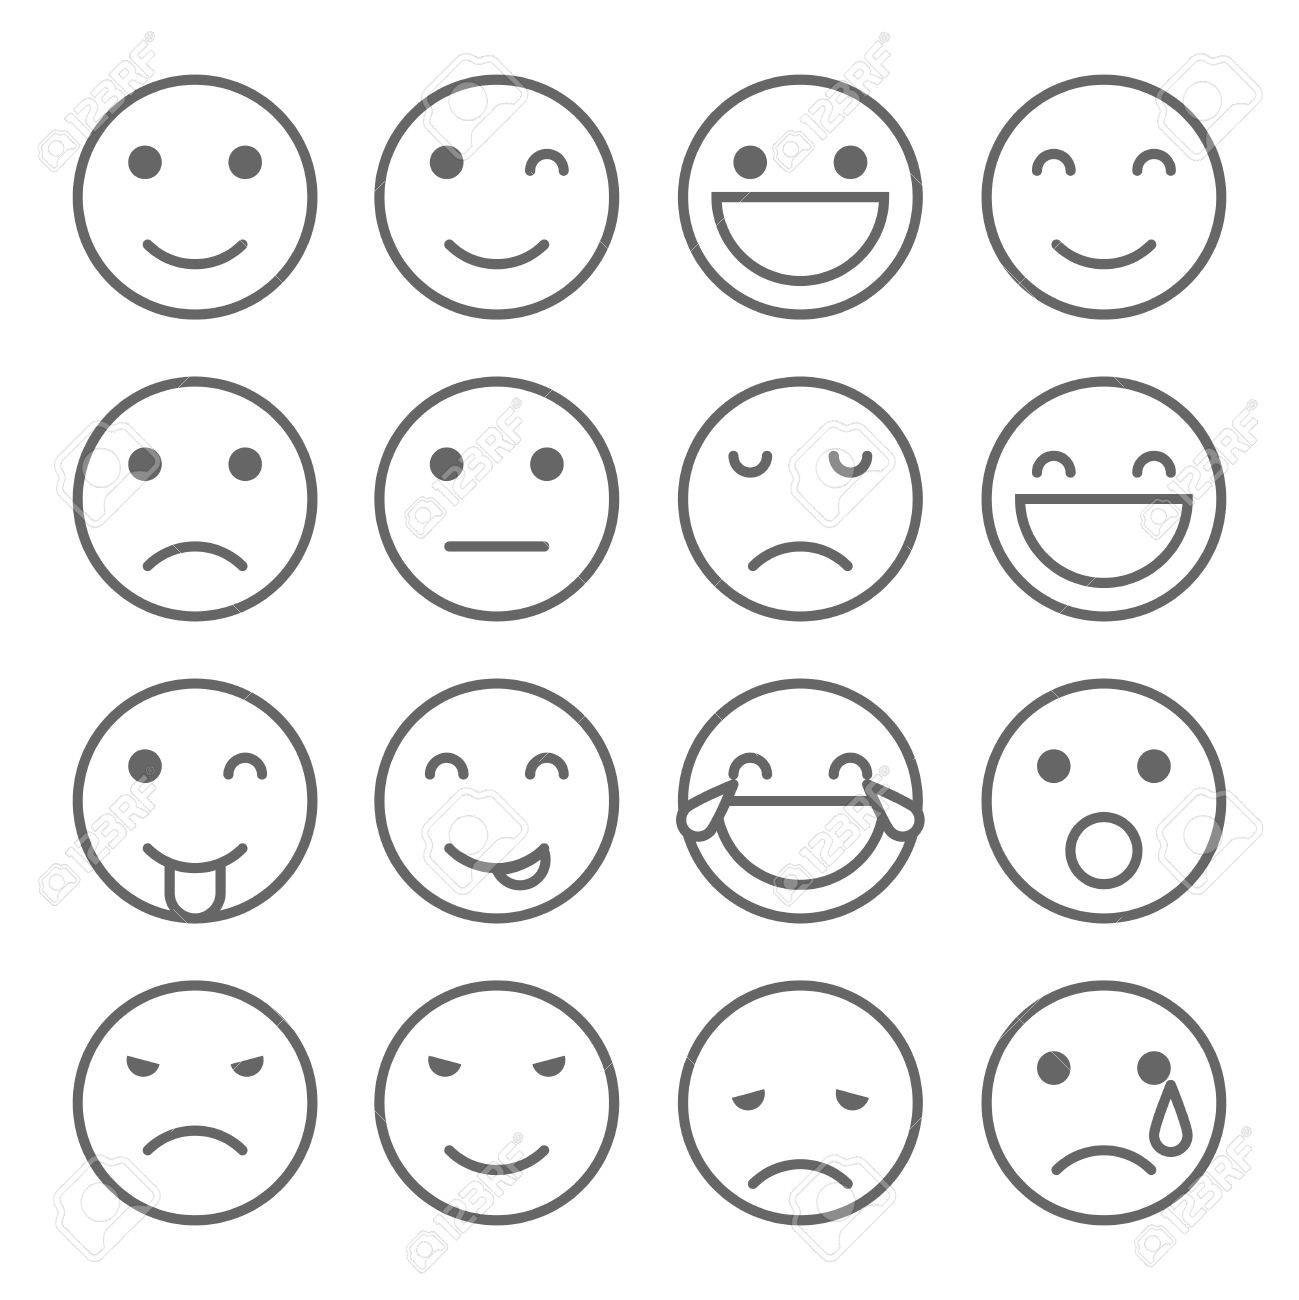 Emoji faces simple icons  Set of emoticons illustrations